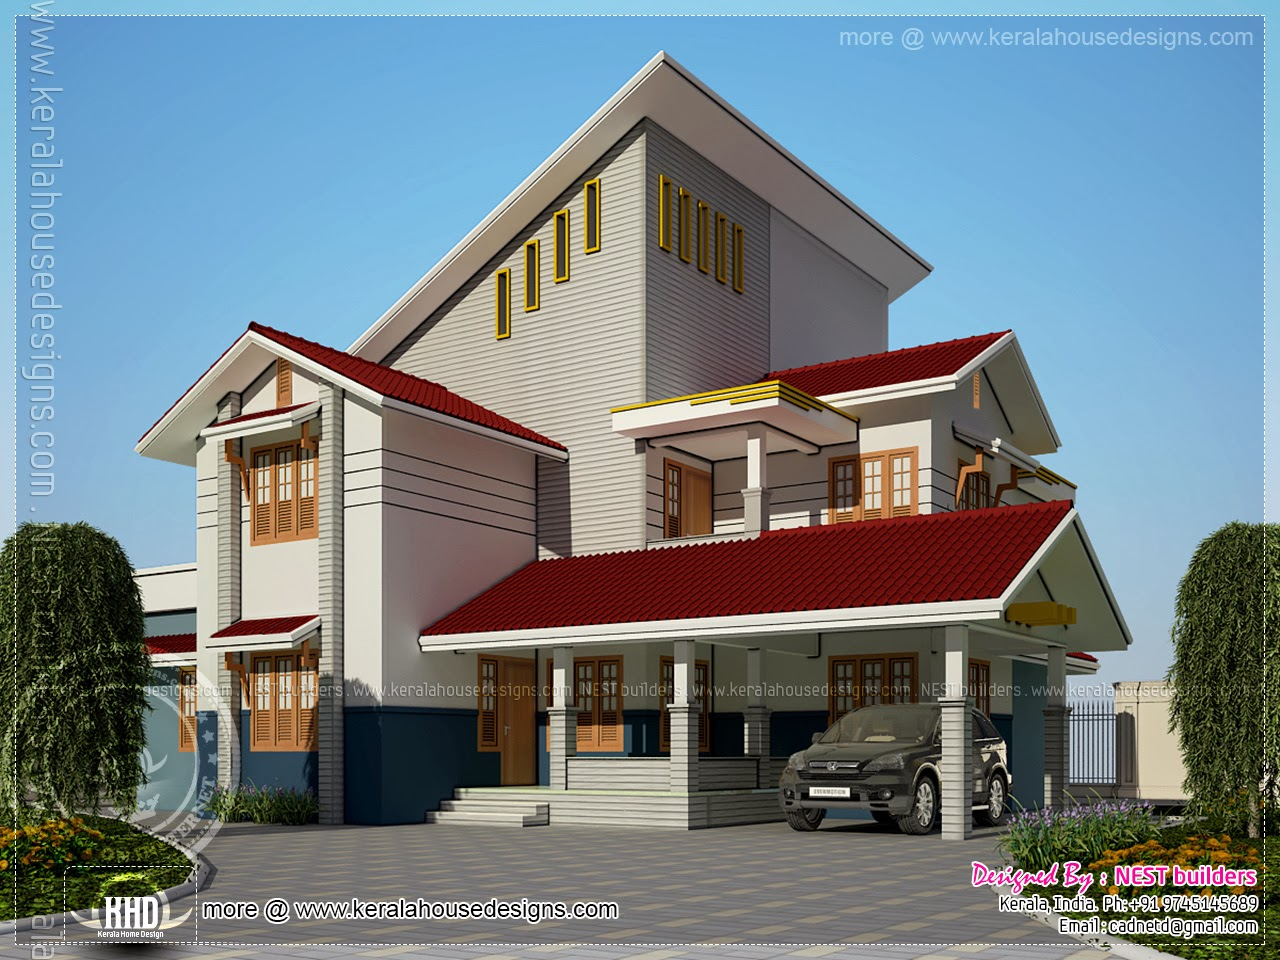 232 square meter modern home exterior kerala home design for 2500 sq ft home